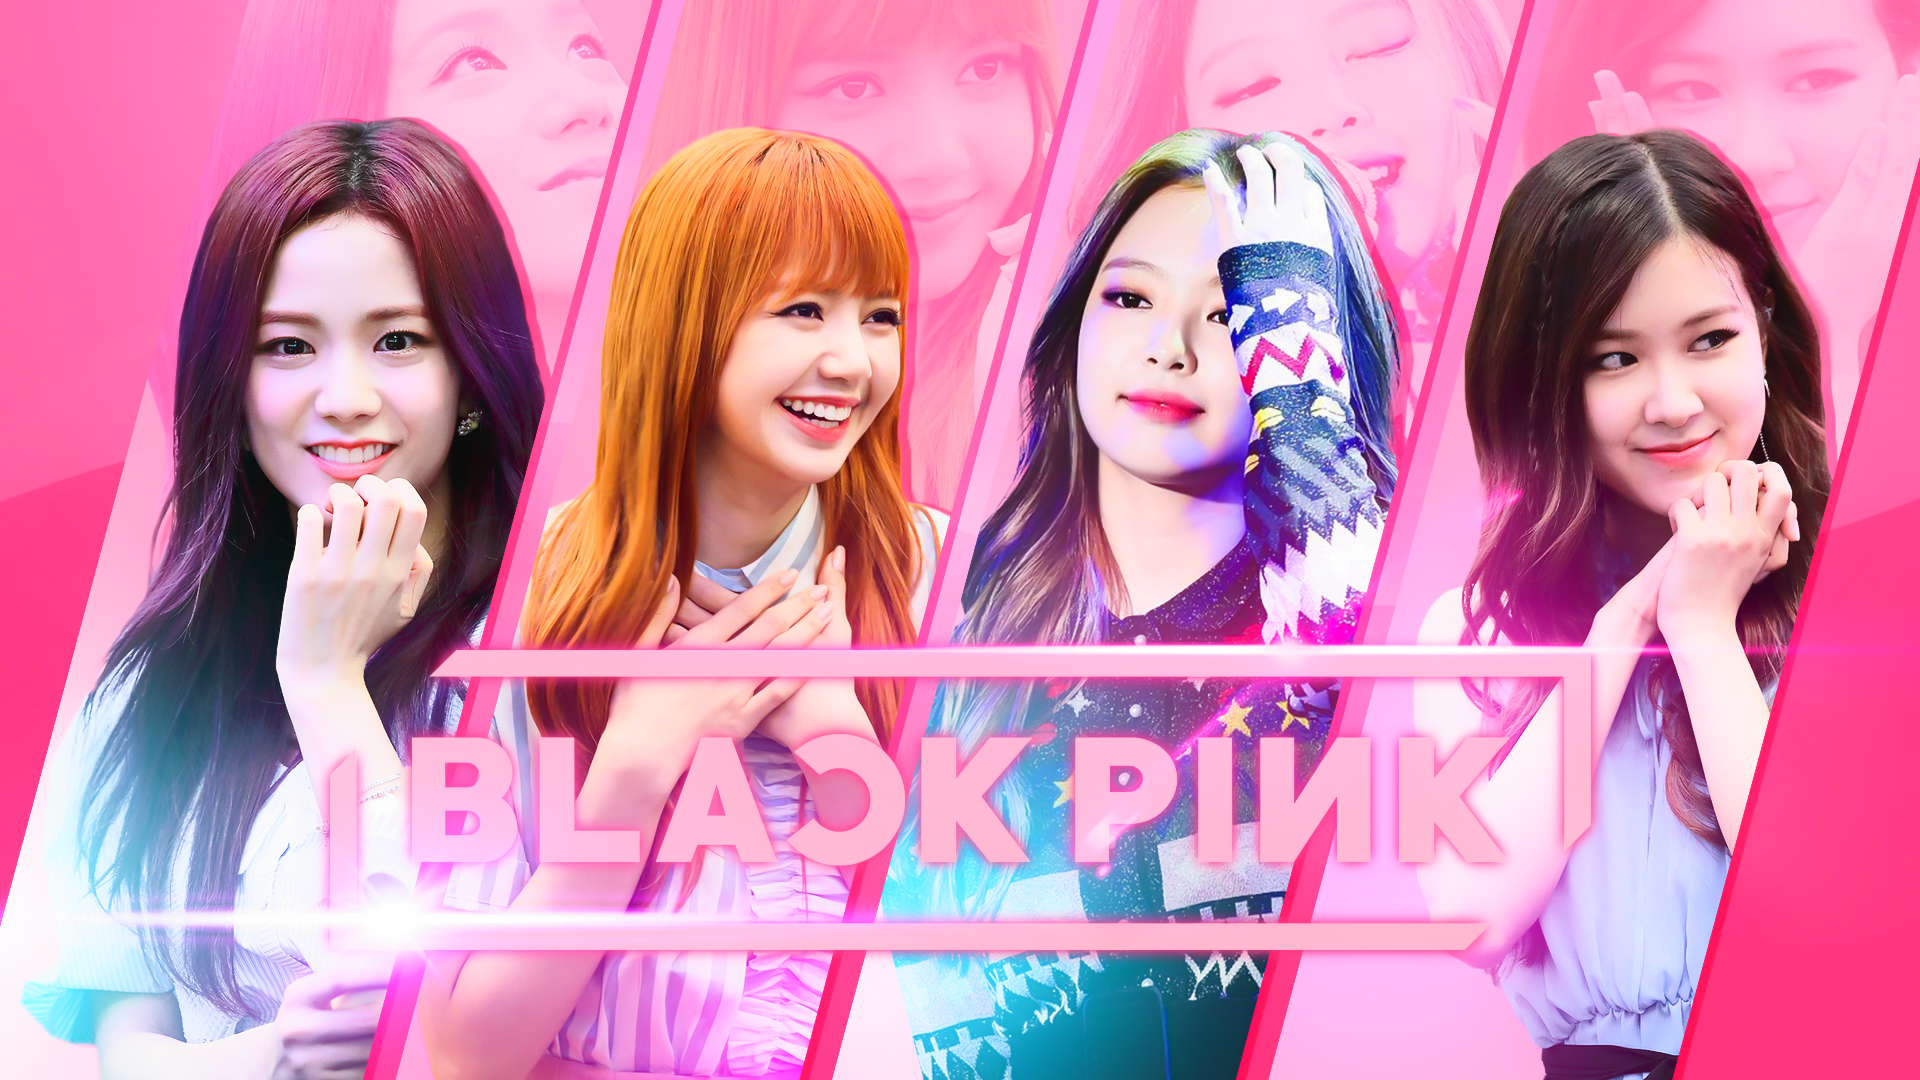 Black Pink Wallpaper Hd Posted By Zoey Walker